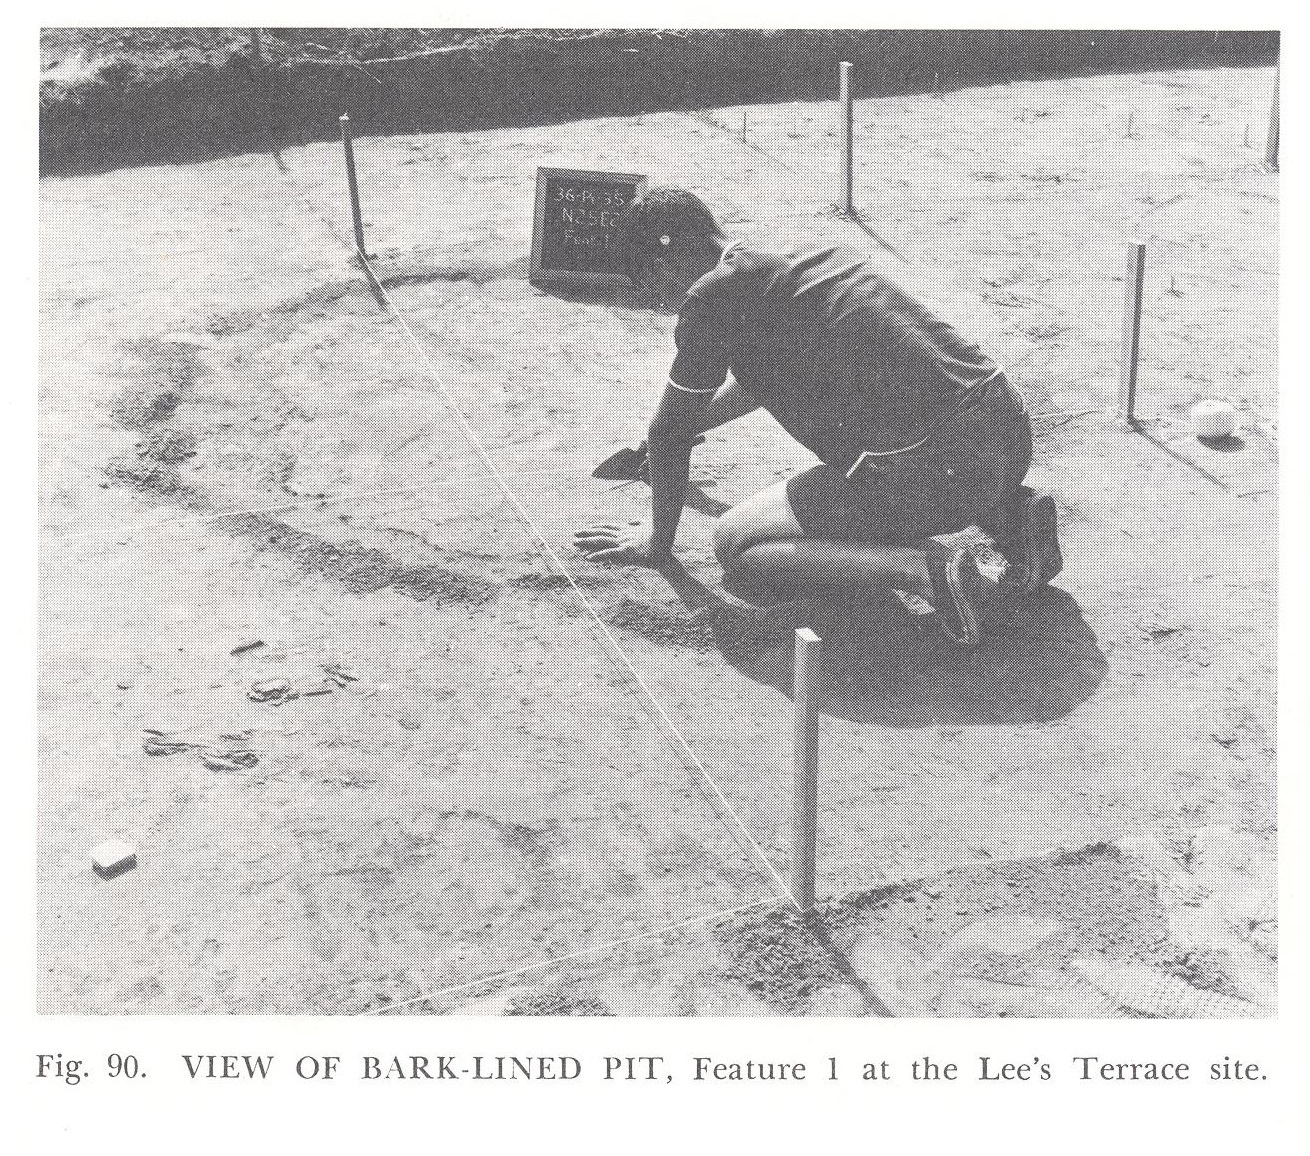 This Week In Pennsylvania Archaeology: This Week In Pennsylvania Archaeology: Archaeological